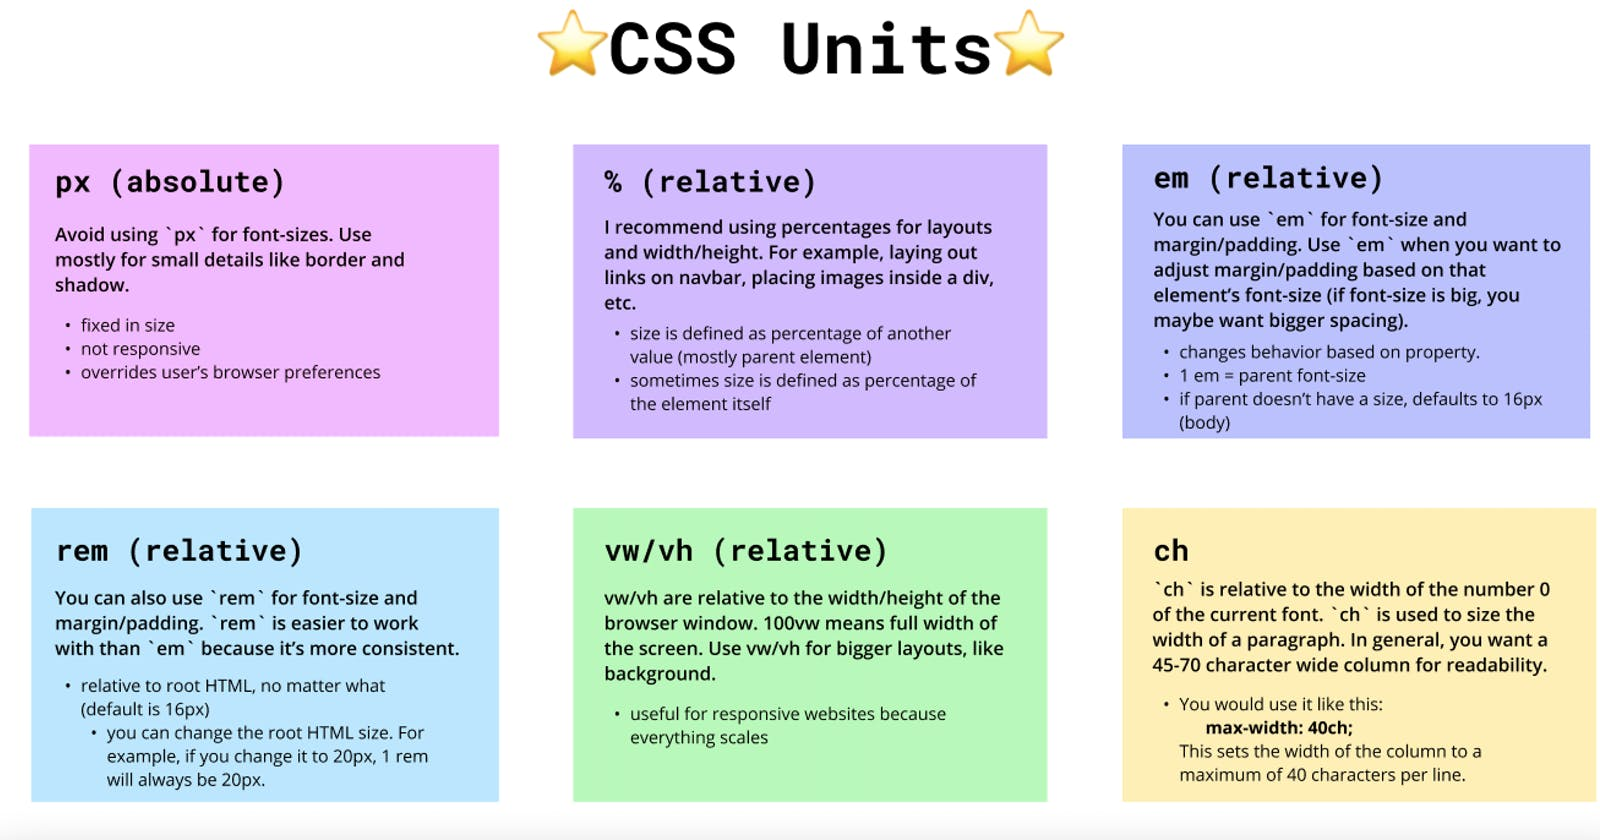 CSS units are confusing AF 😖